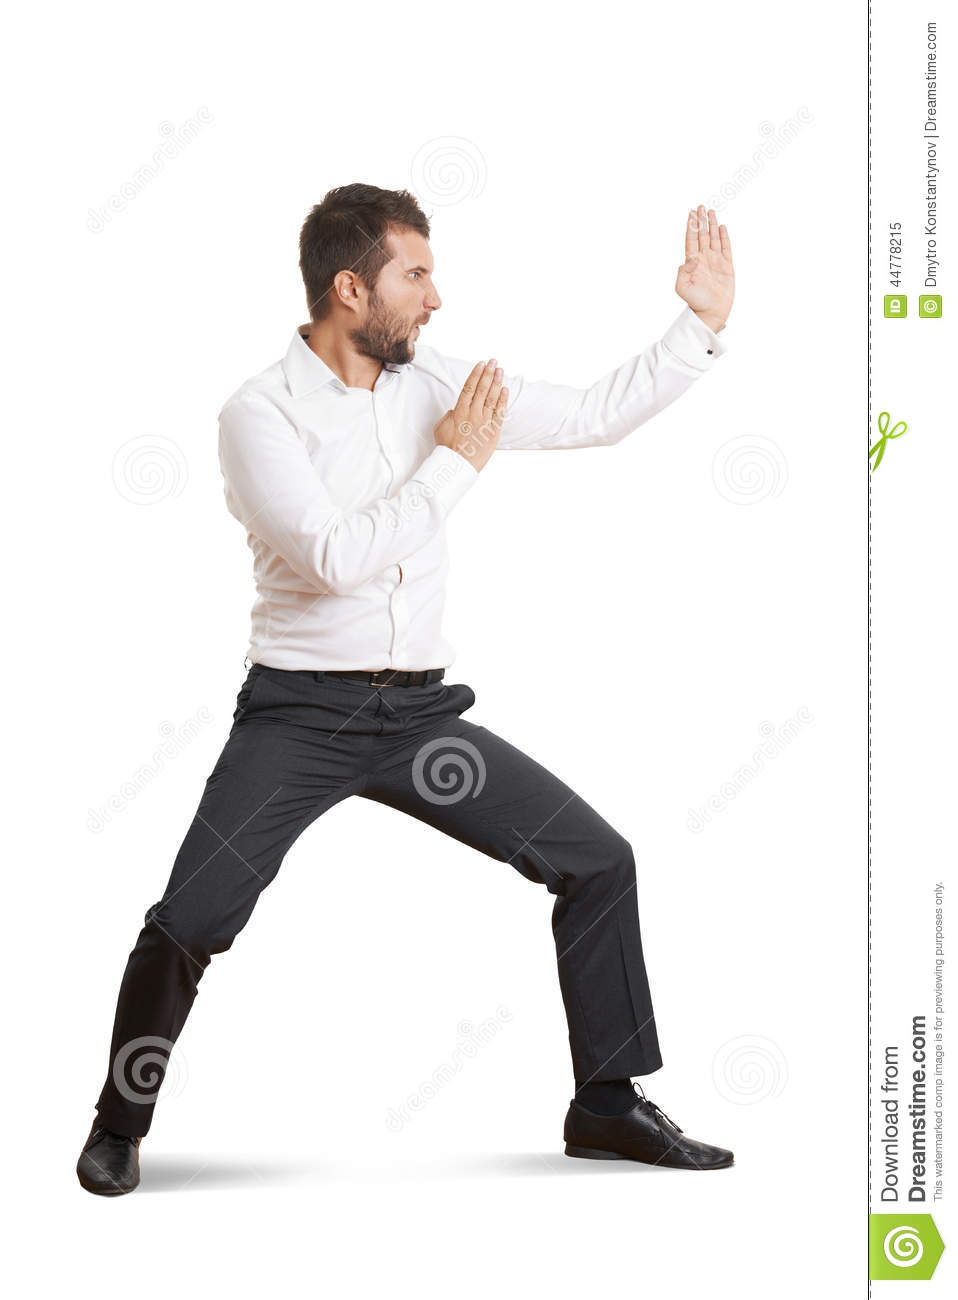 Man Standing In Pose As Karate Stock Image - Image: 44778215